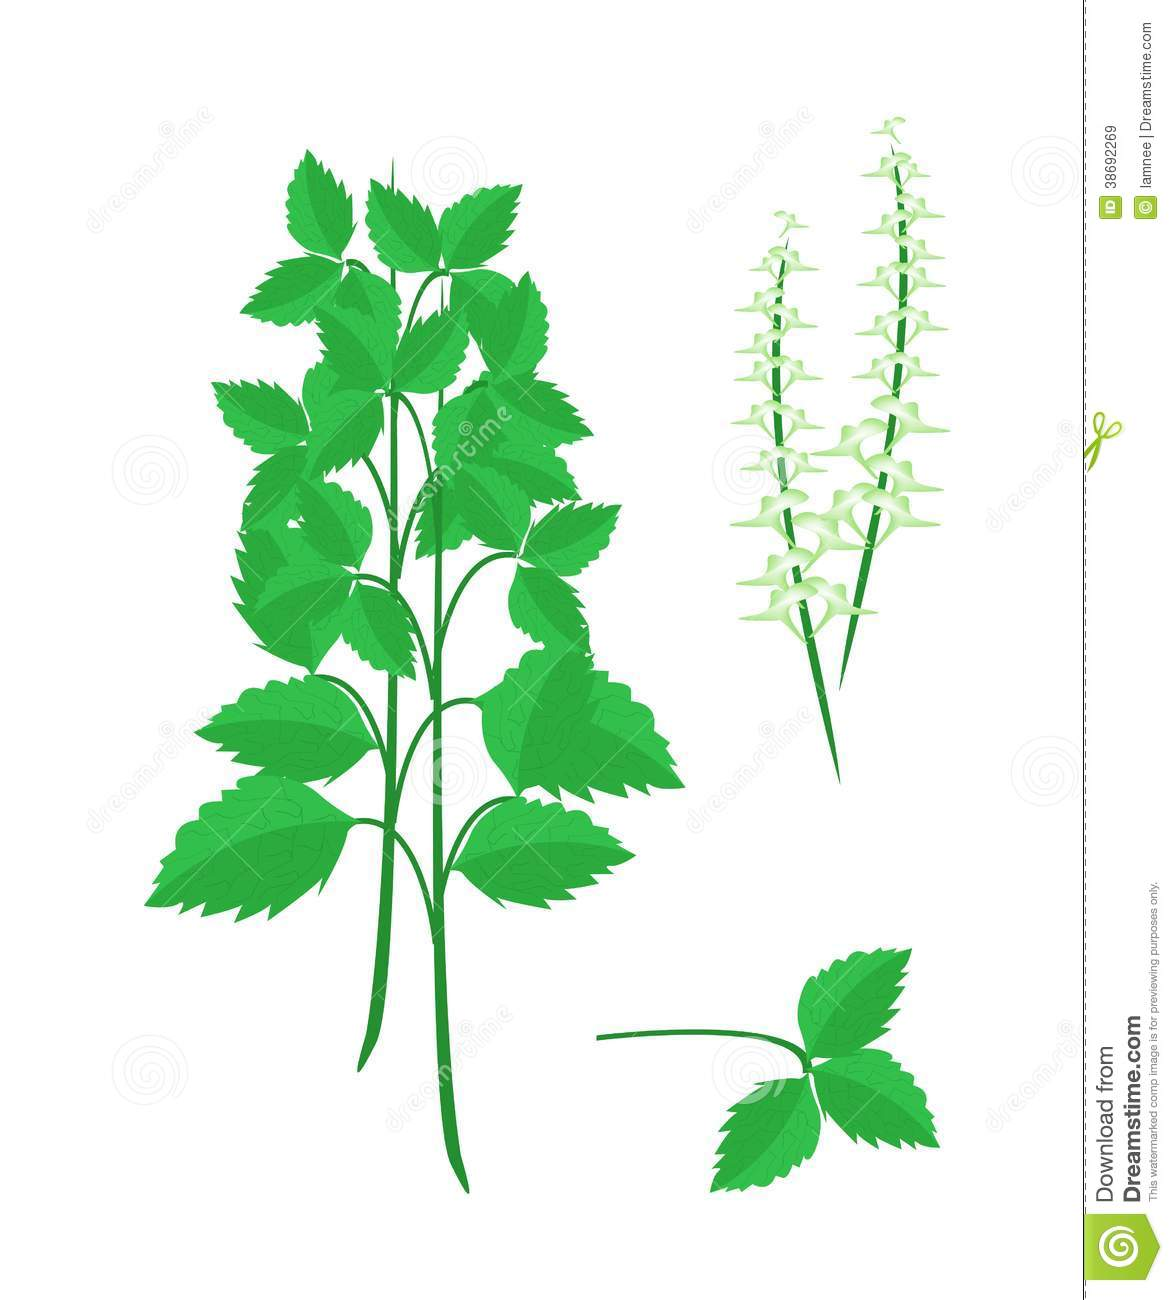 Vegetable and Herb, Vector Illustration Parts of Holy Basil or Sacred ...